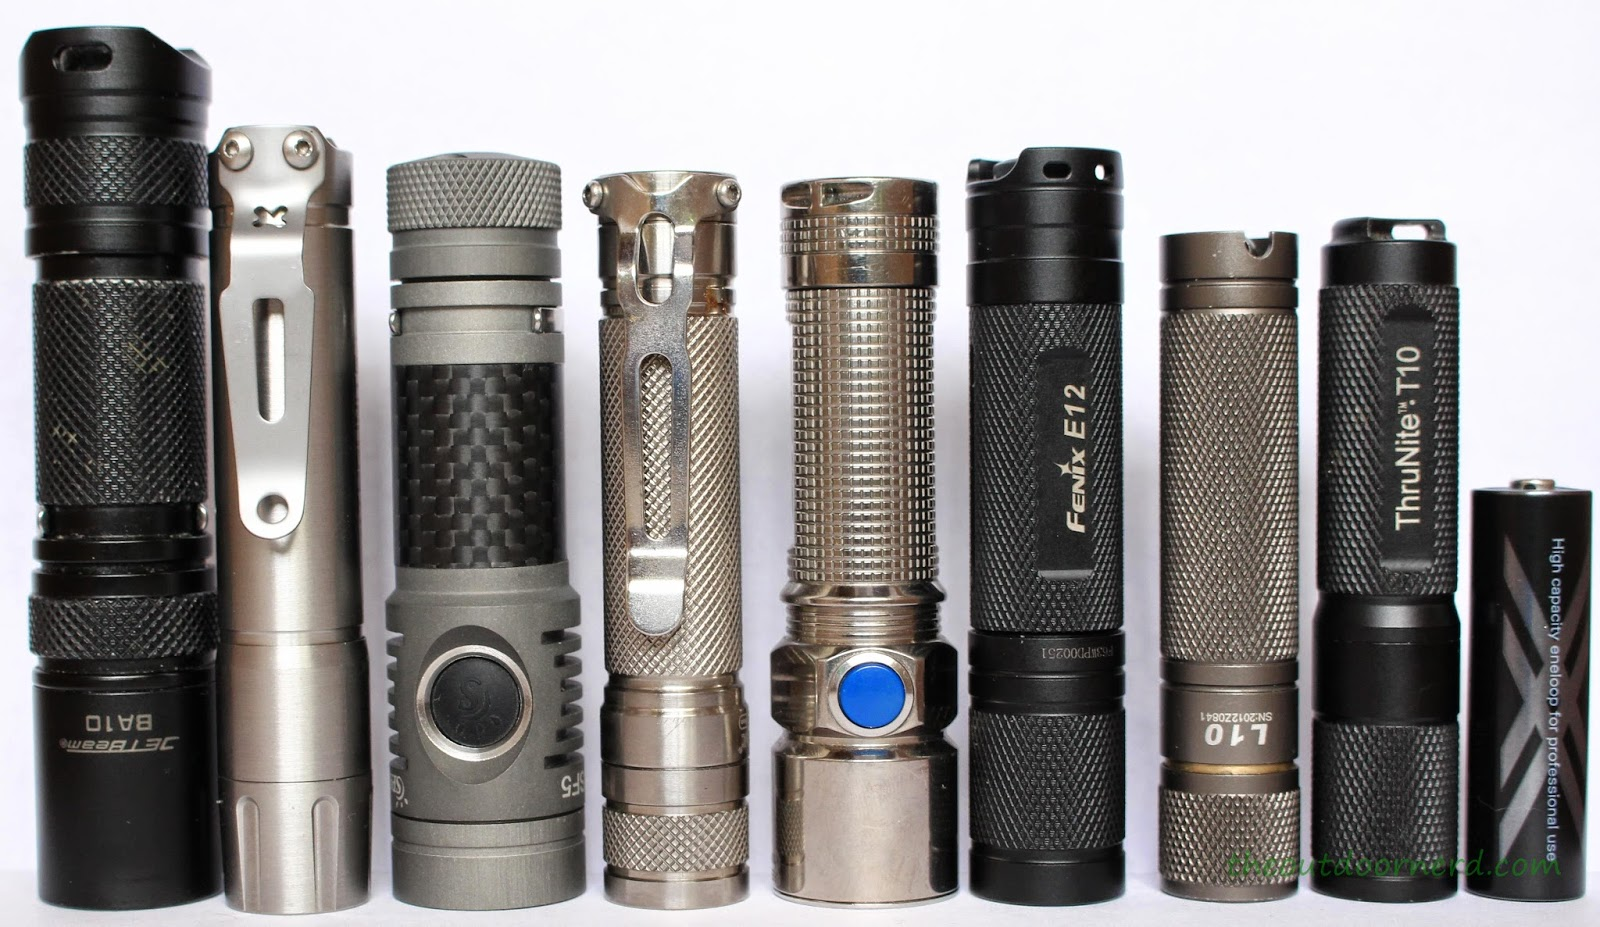 From Left: Jetbeam BA10, Thrunite T10S, Spark SF5, EagleTac D25A Ti, Olight S15 Ti, Fenix E12, L3 L10-219, Thrunite T10